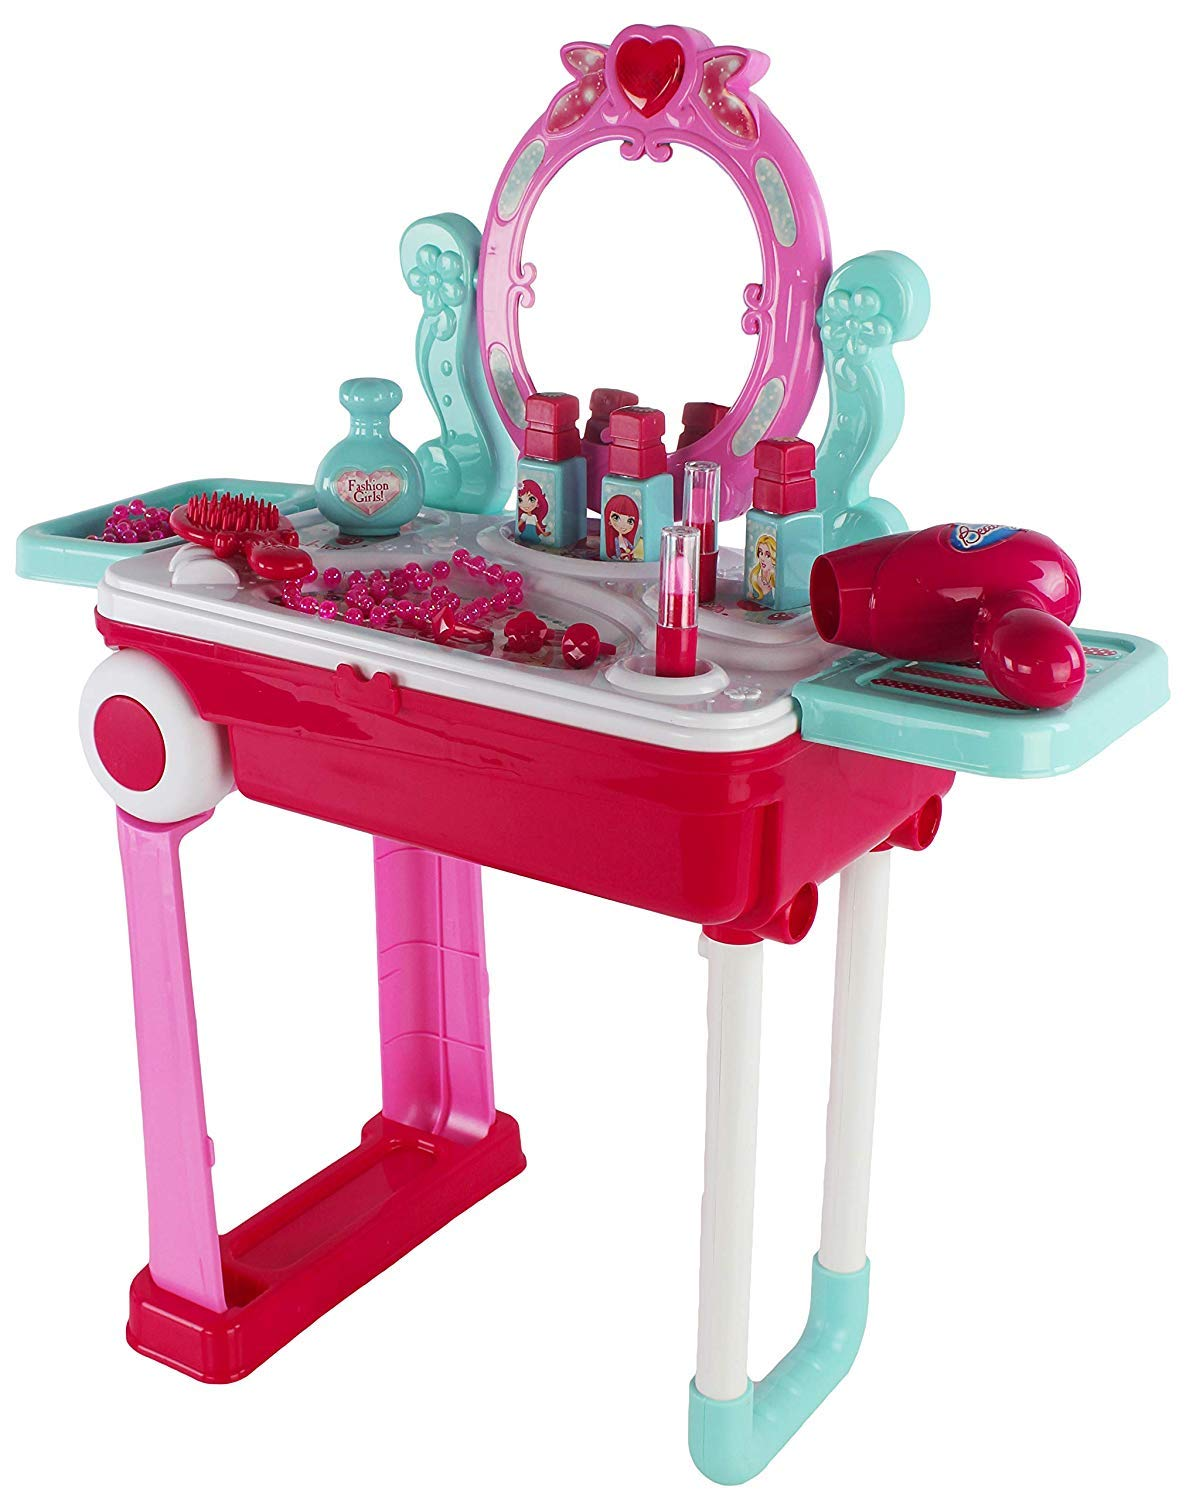 Children's Imaginary Pretend Play Battery Operated Lights & Sounds 2 In 1 Portable Vanity Luggage Playset Toy, Wonderful Toy For Little Girls Who Is Always On The Go & Want To get Dolled Up by Kids Rock Trading